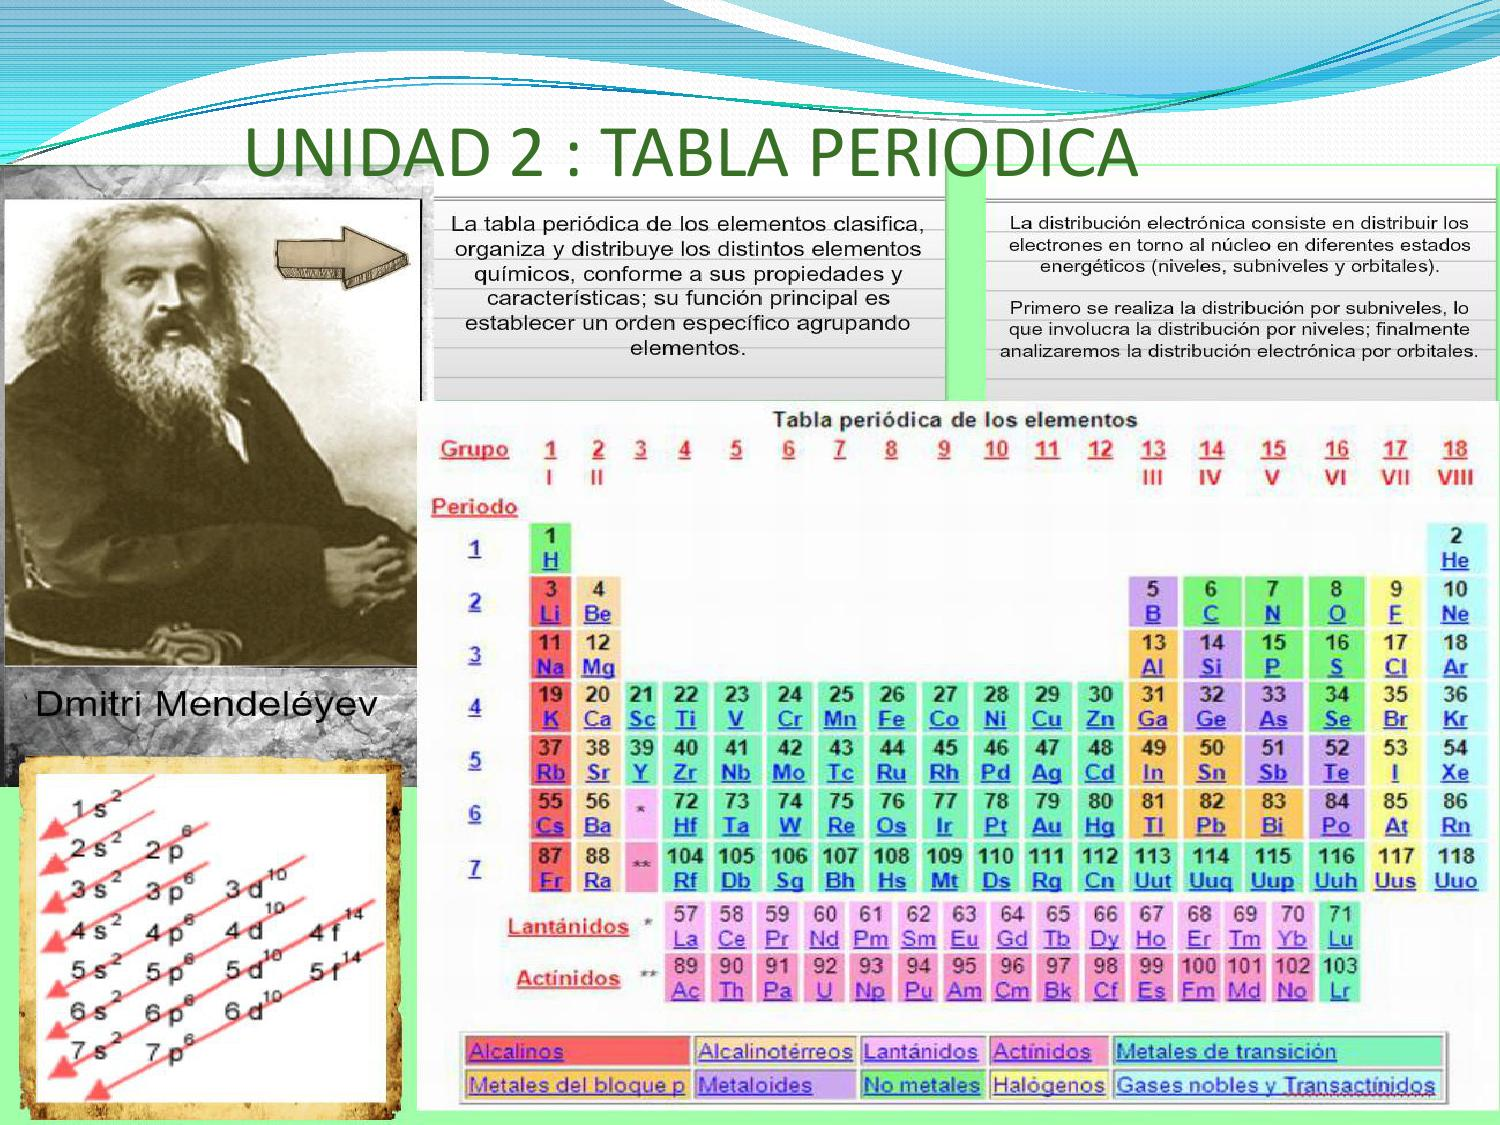 Tabla periodica by arnoldo romero issuu urtaz Image collections